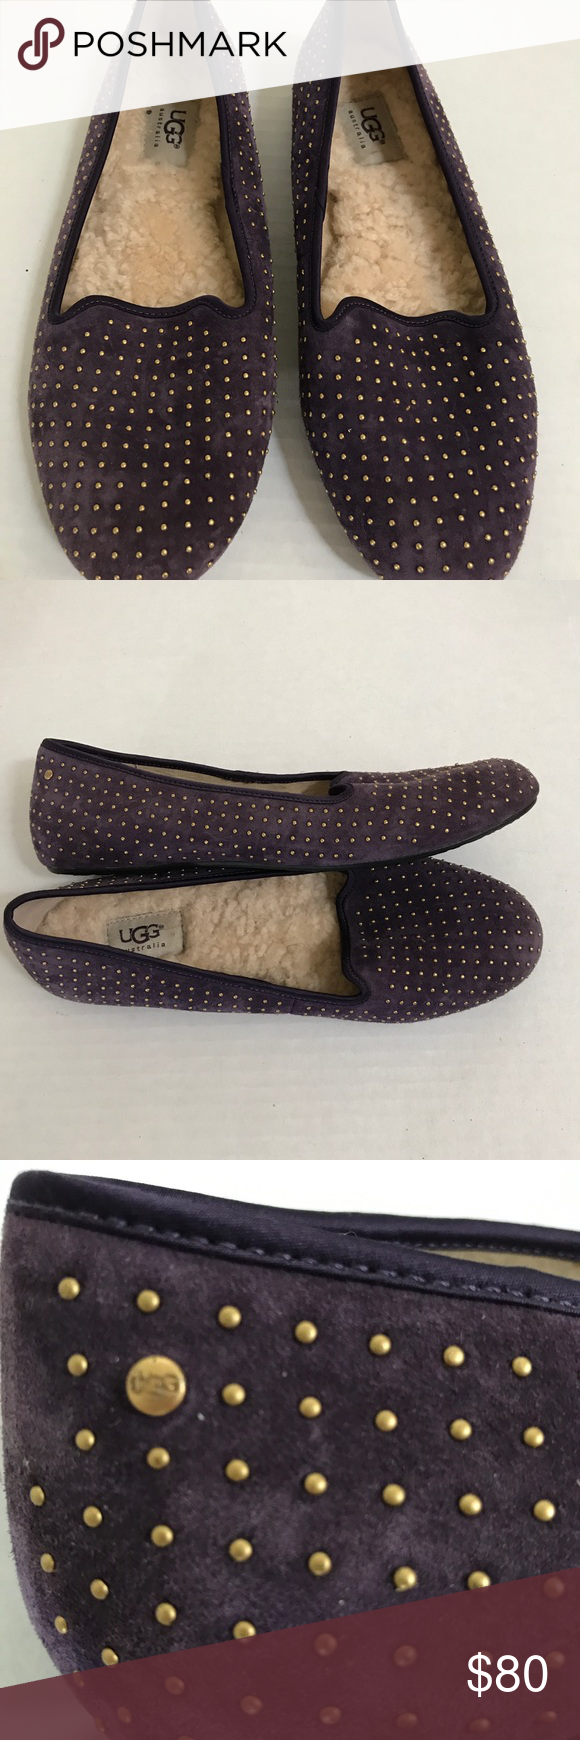 4ed72f5ed26 UGG purple velvet Alloway studded loafer, Sz. 9 Give those toes a ...